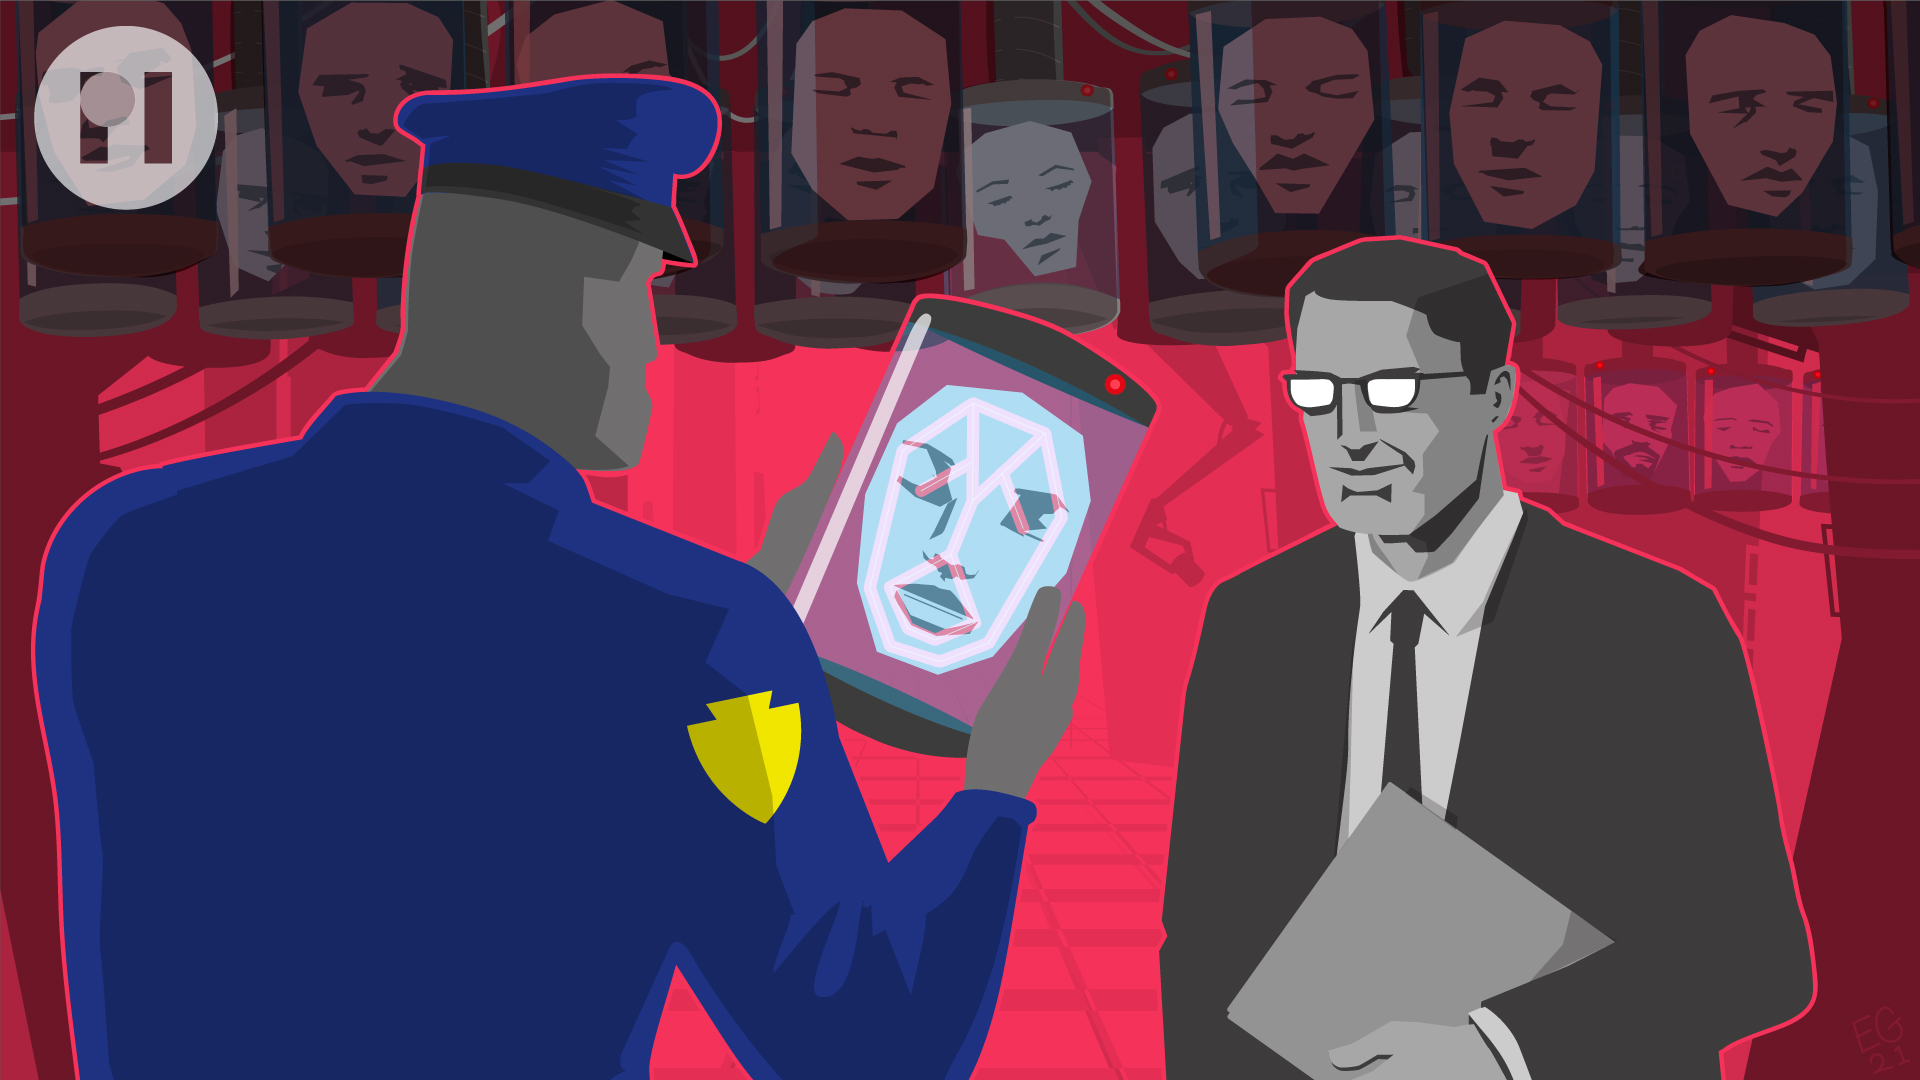 FACIAL RECOGNITION ILLUSTRATION FOR PRIVACY INTERNATIONAL